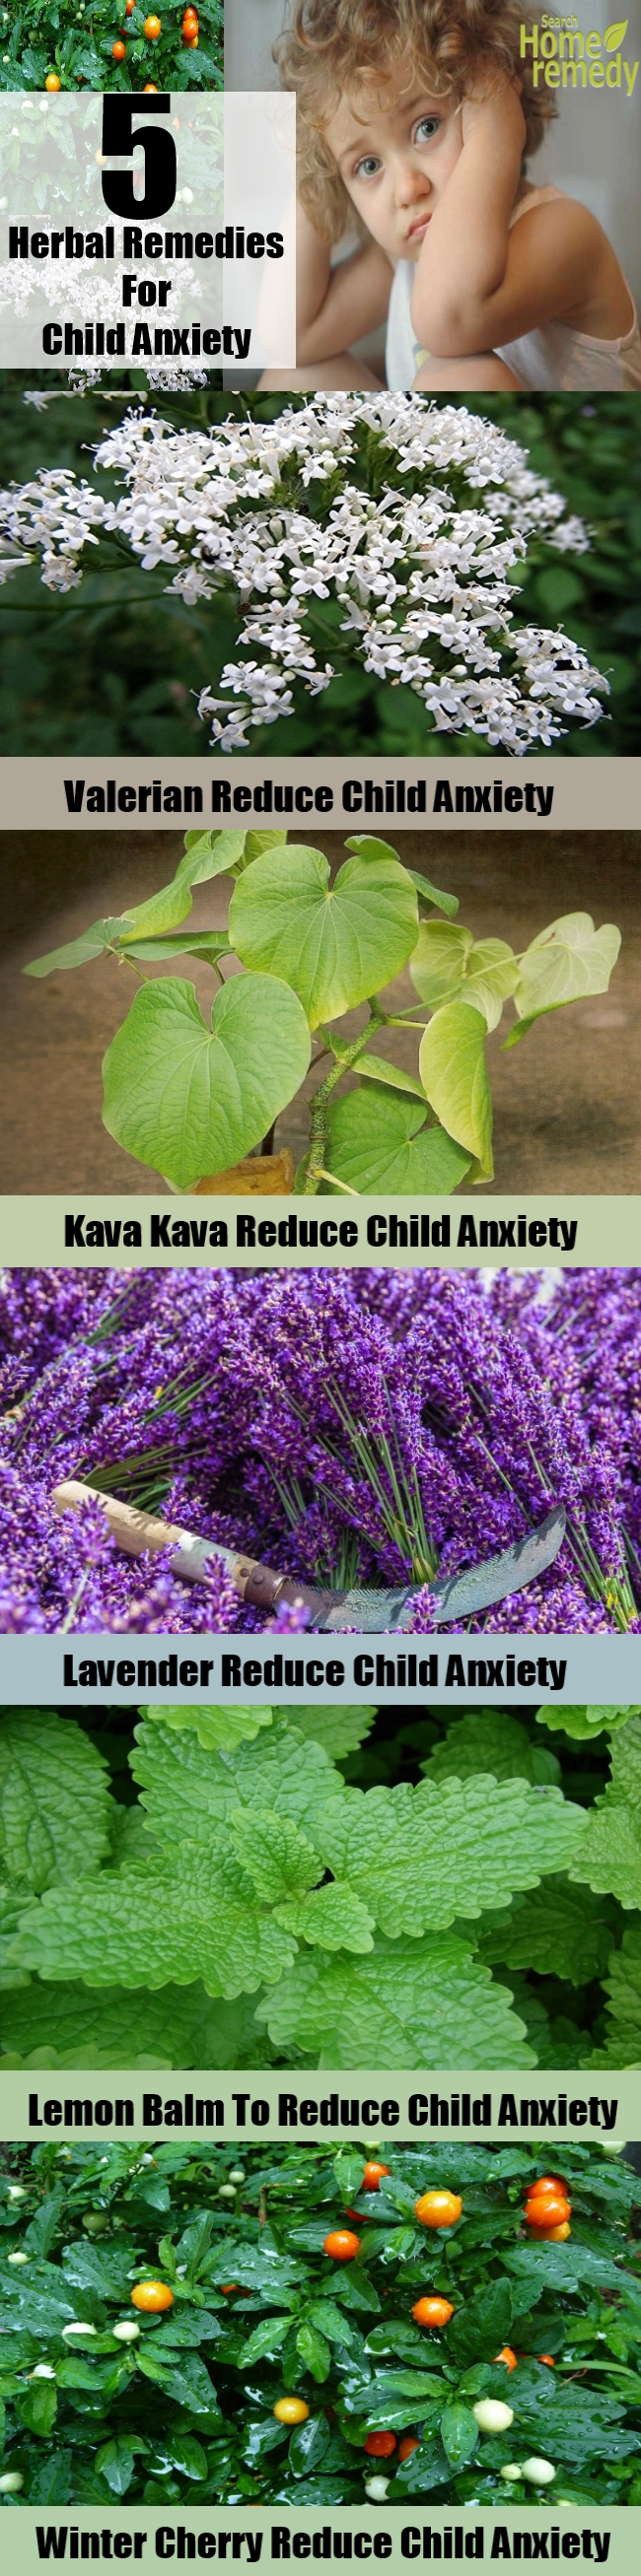 5 Best Herbal Remedies For Child Anxiety